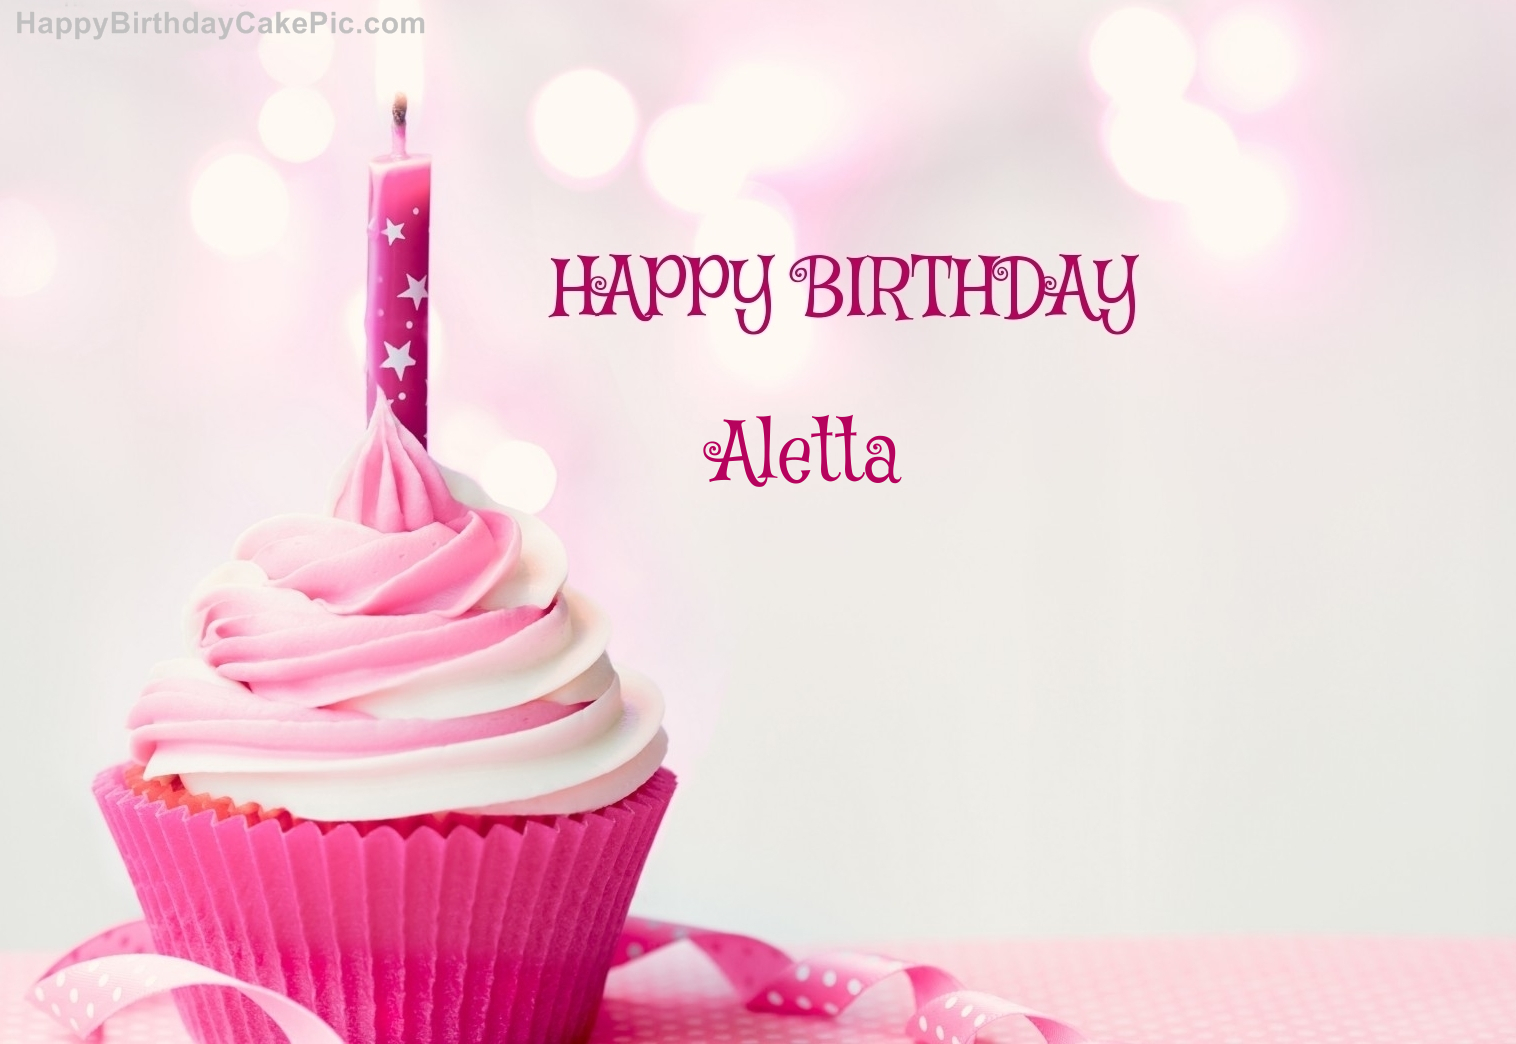 Happy Birthday Cupcake Candle Pink Cake For Aletta